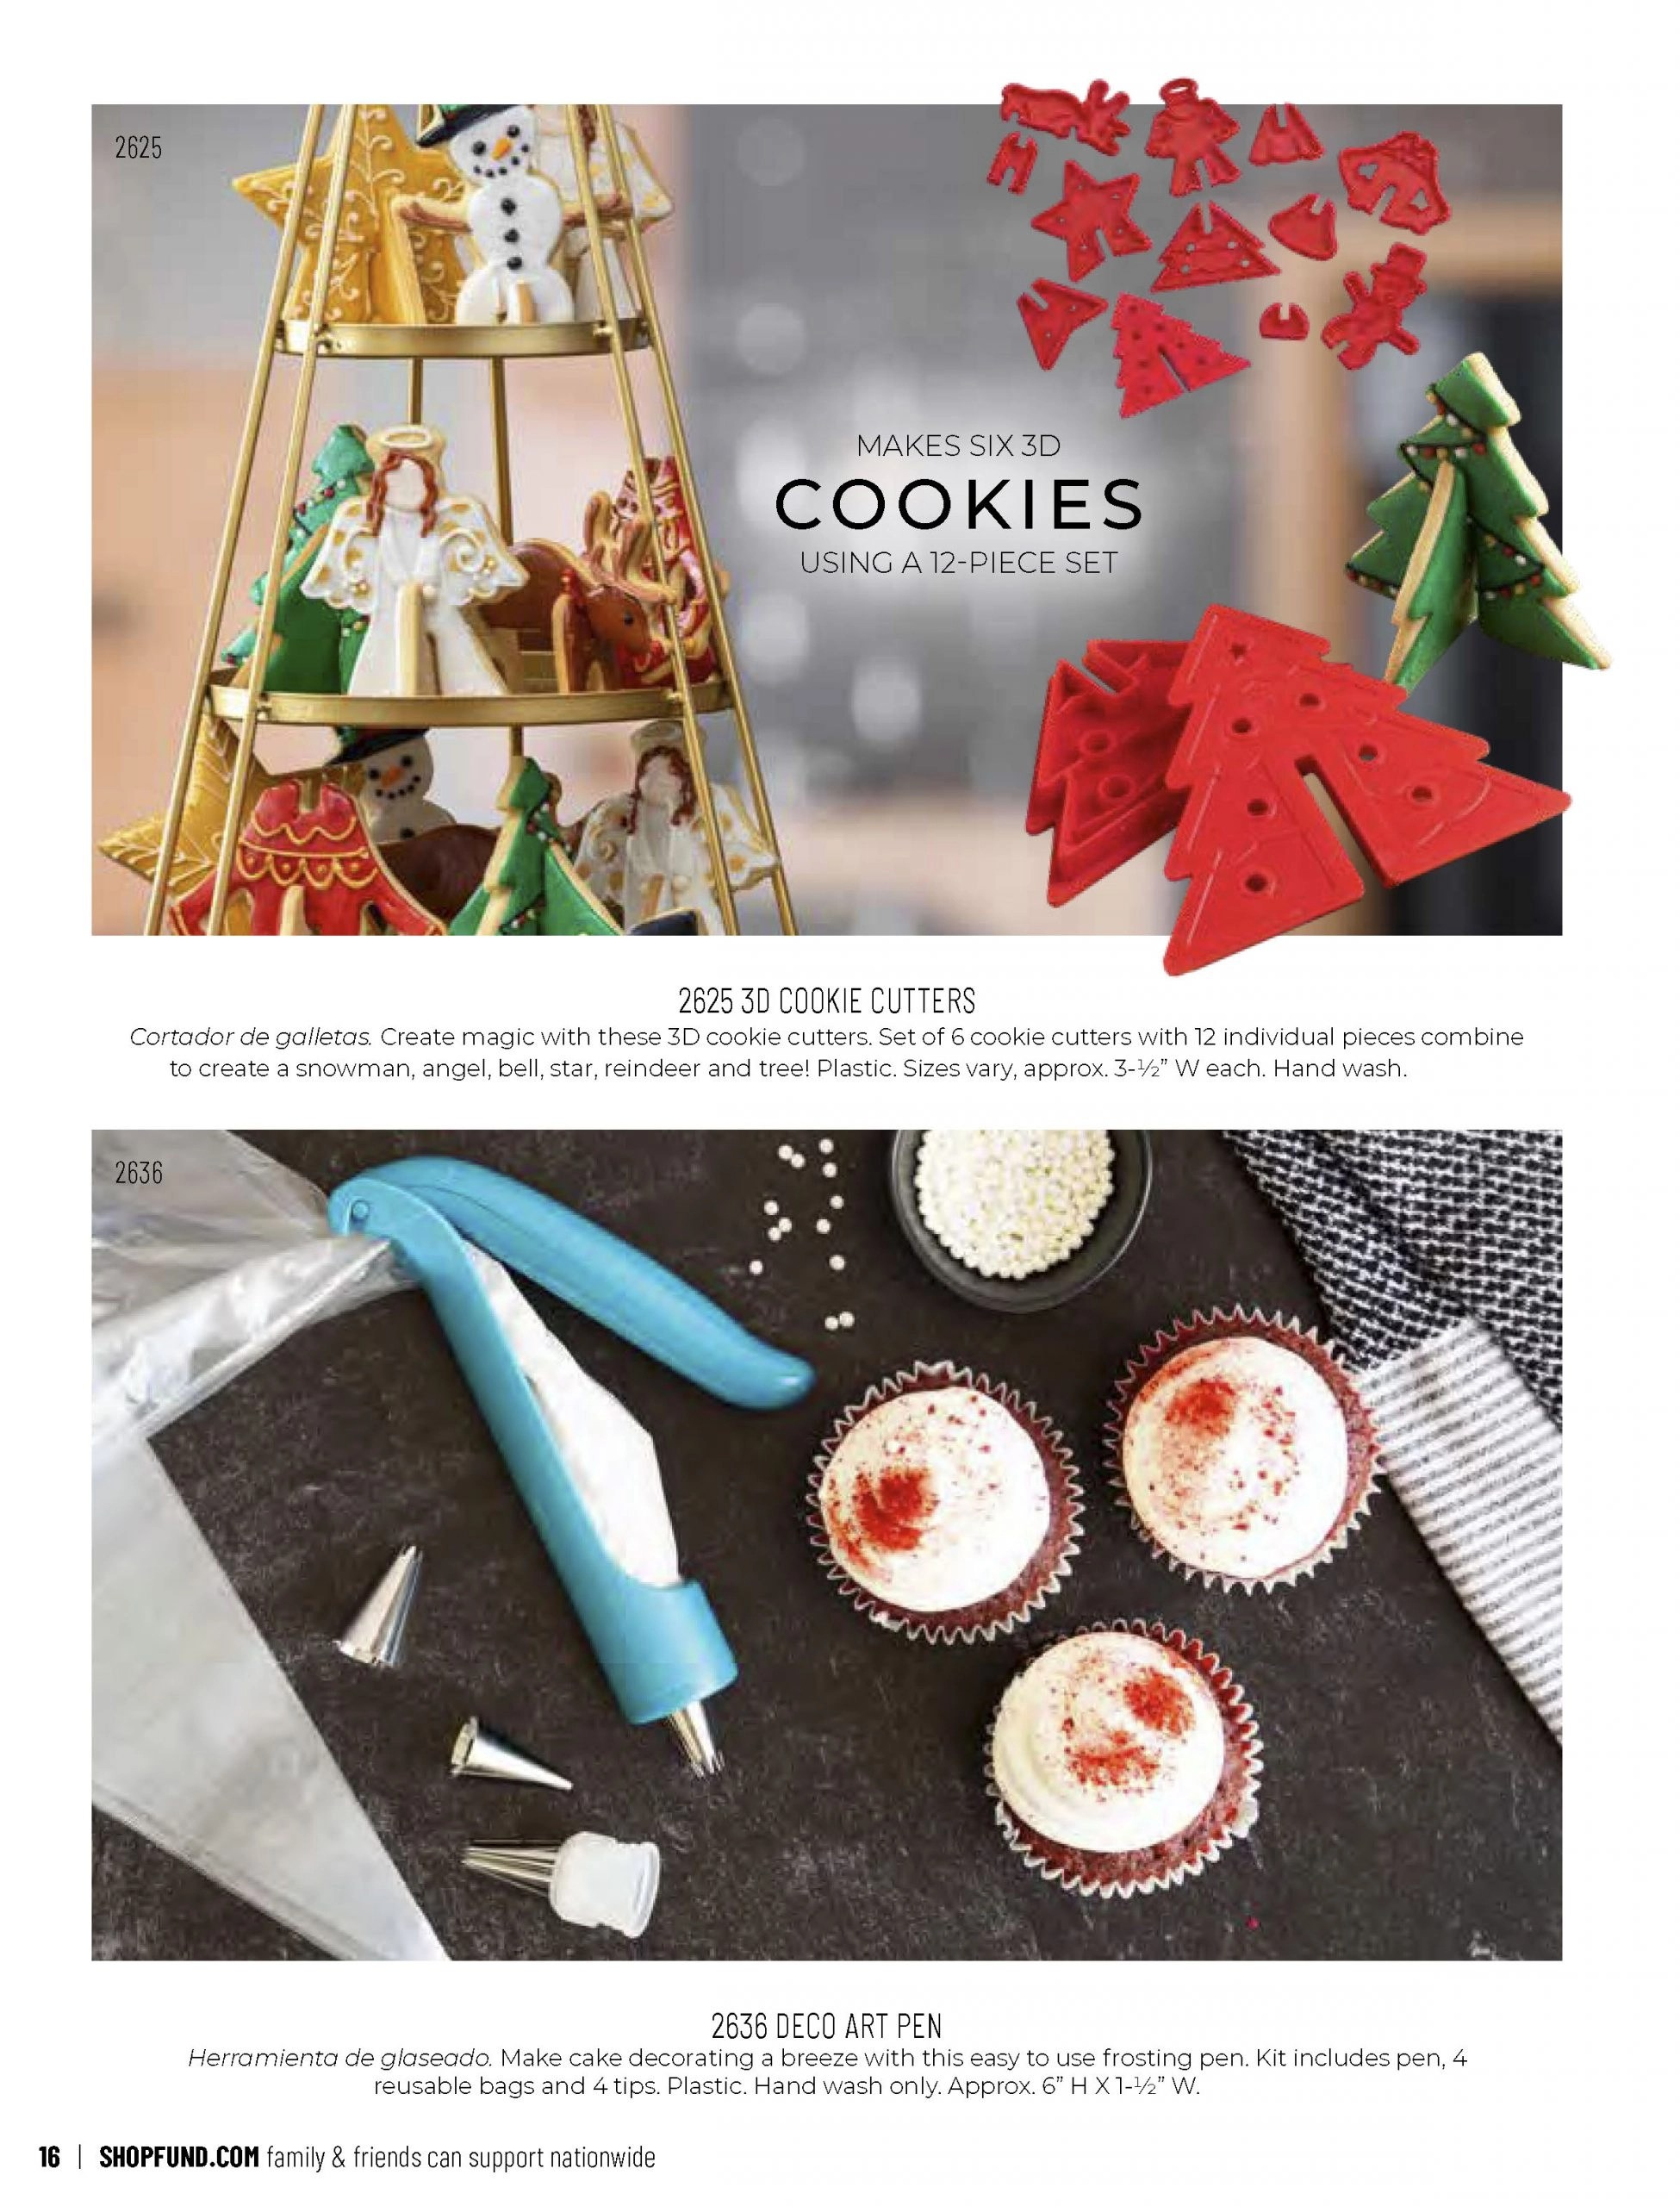 Believe Comforts of Home Fall Catalog_Page_16